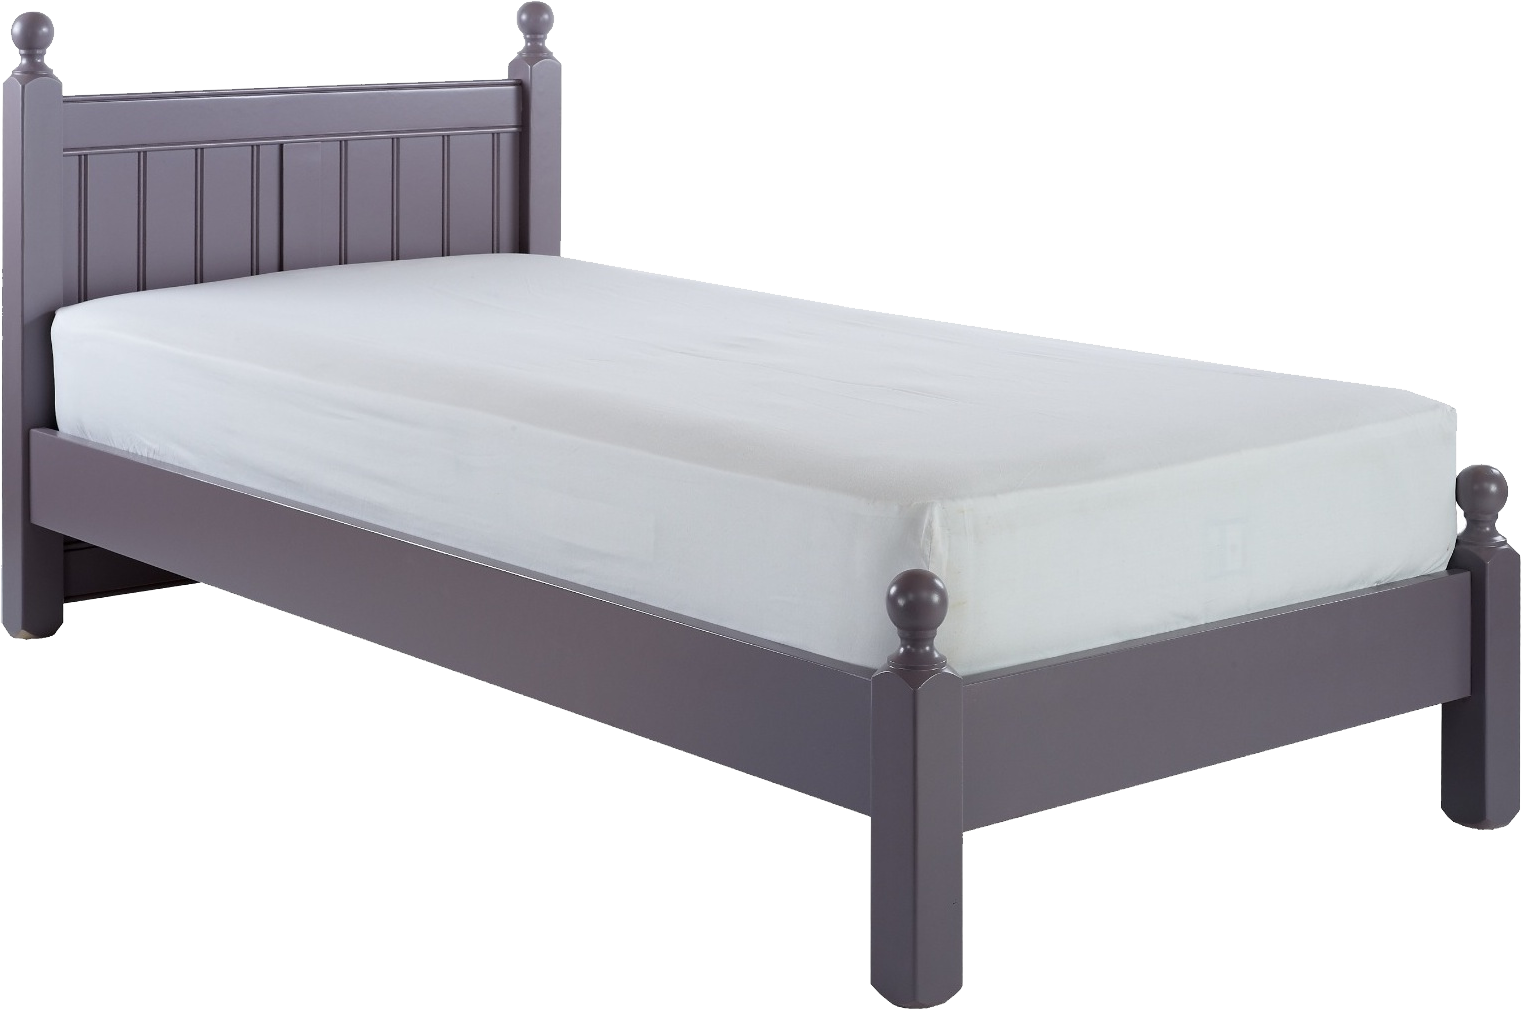 Bed clipart transparent background. Png